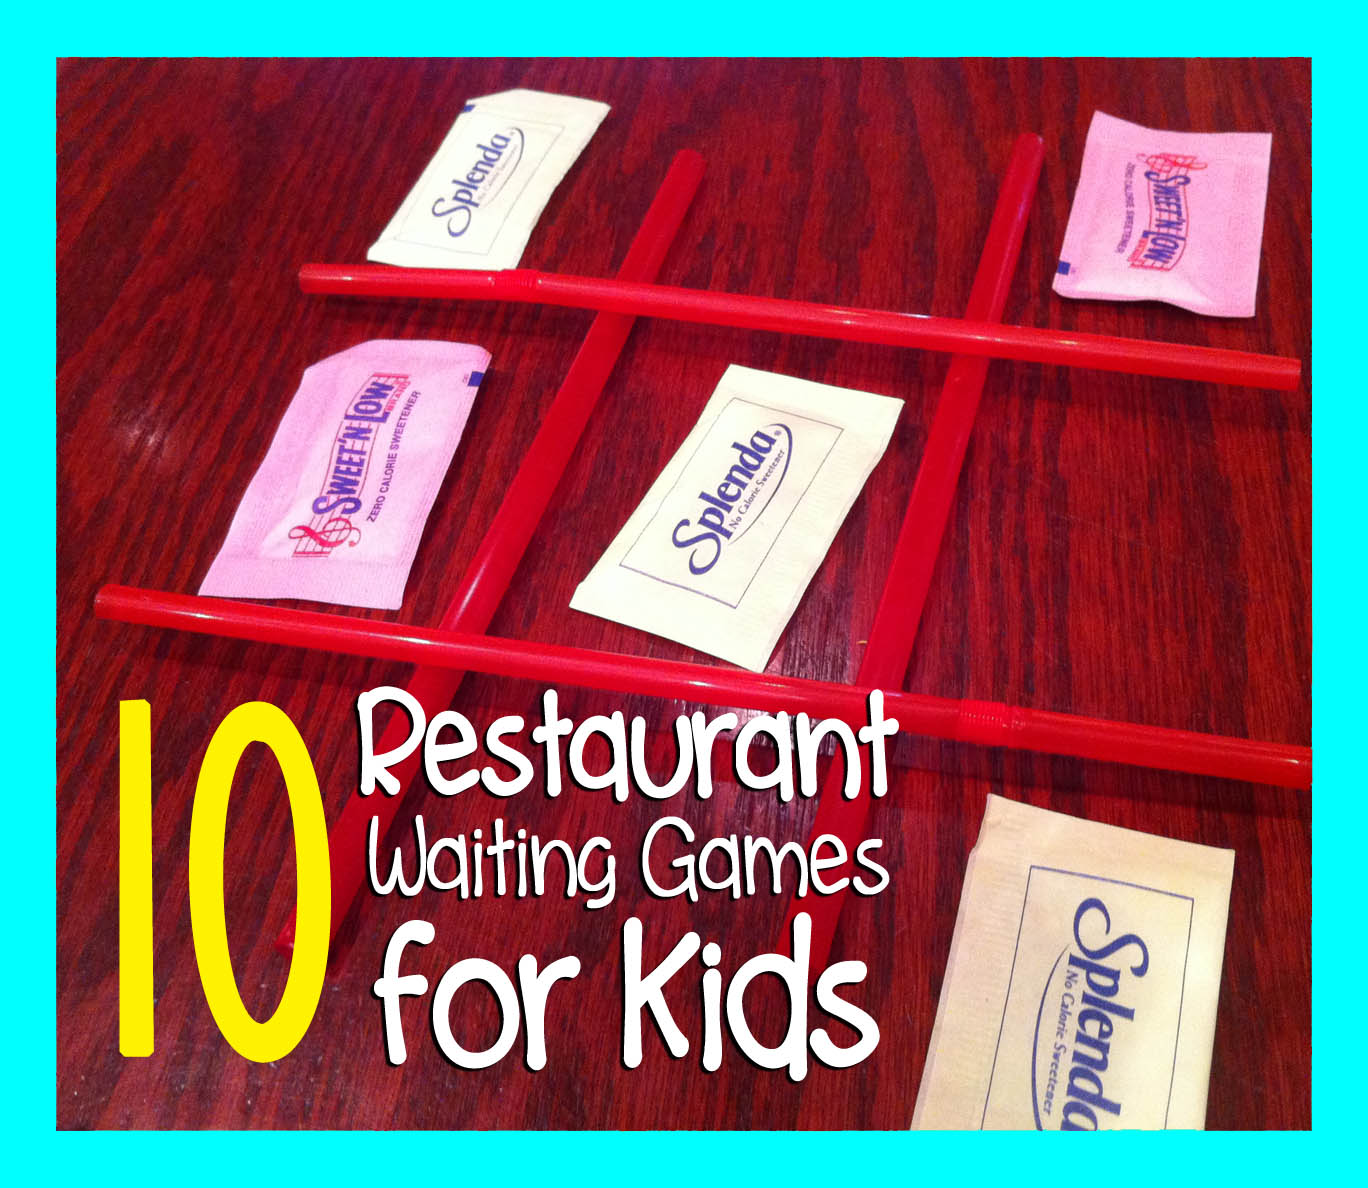 Restaurant Waiting Games To Play With Kids Repeat Crafter Me - Restaurant table games